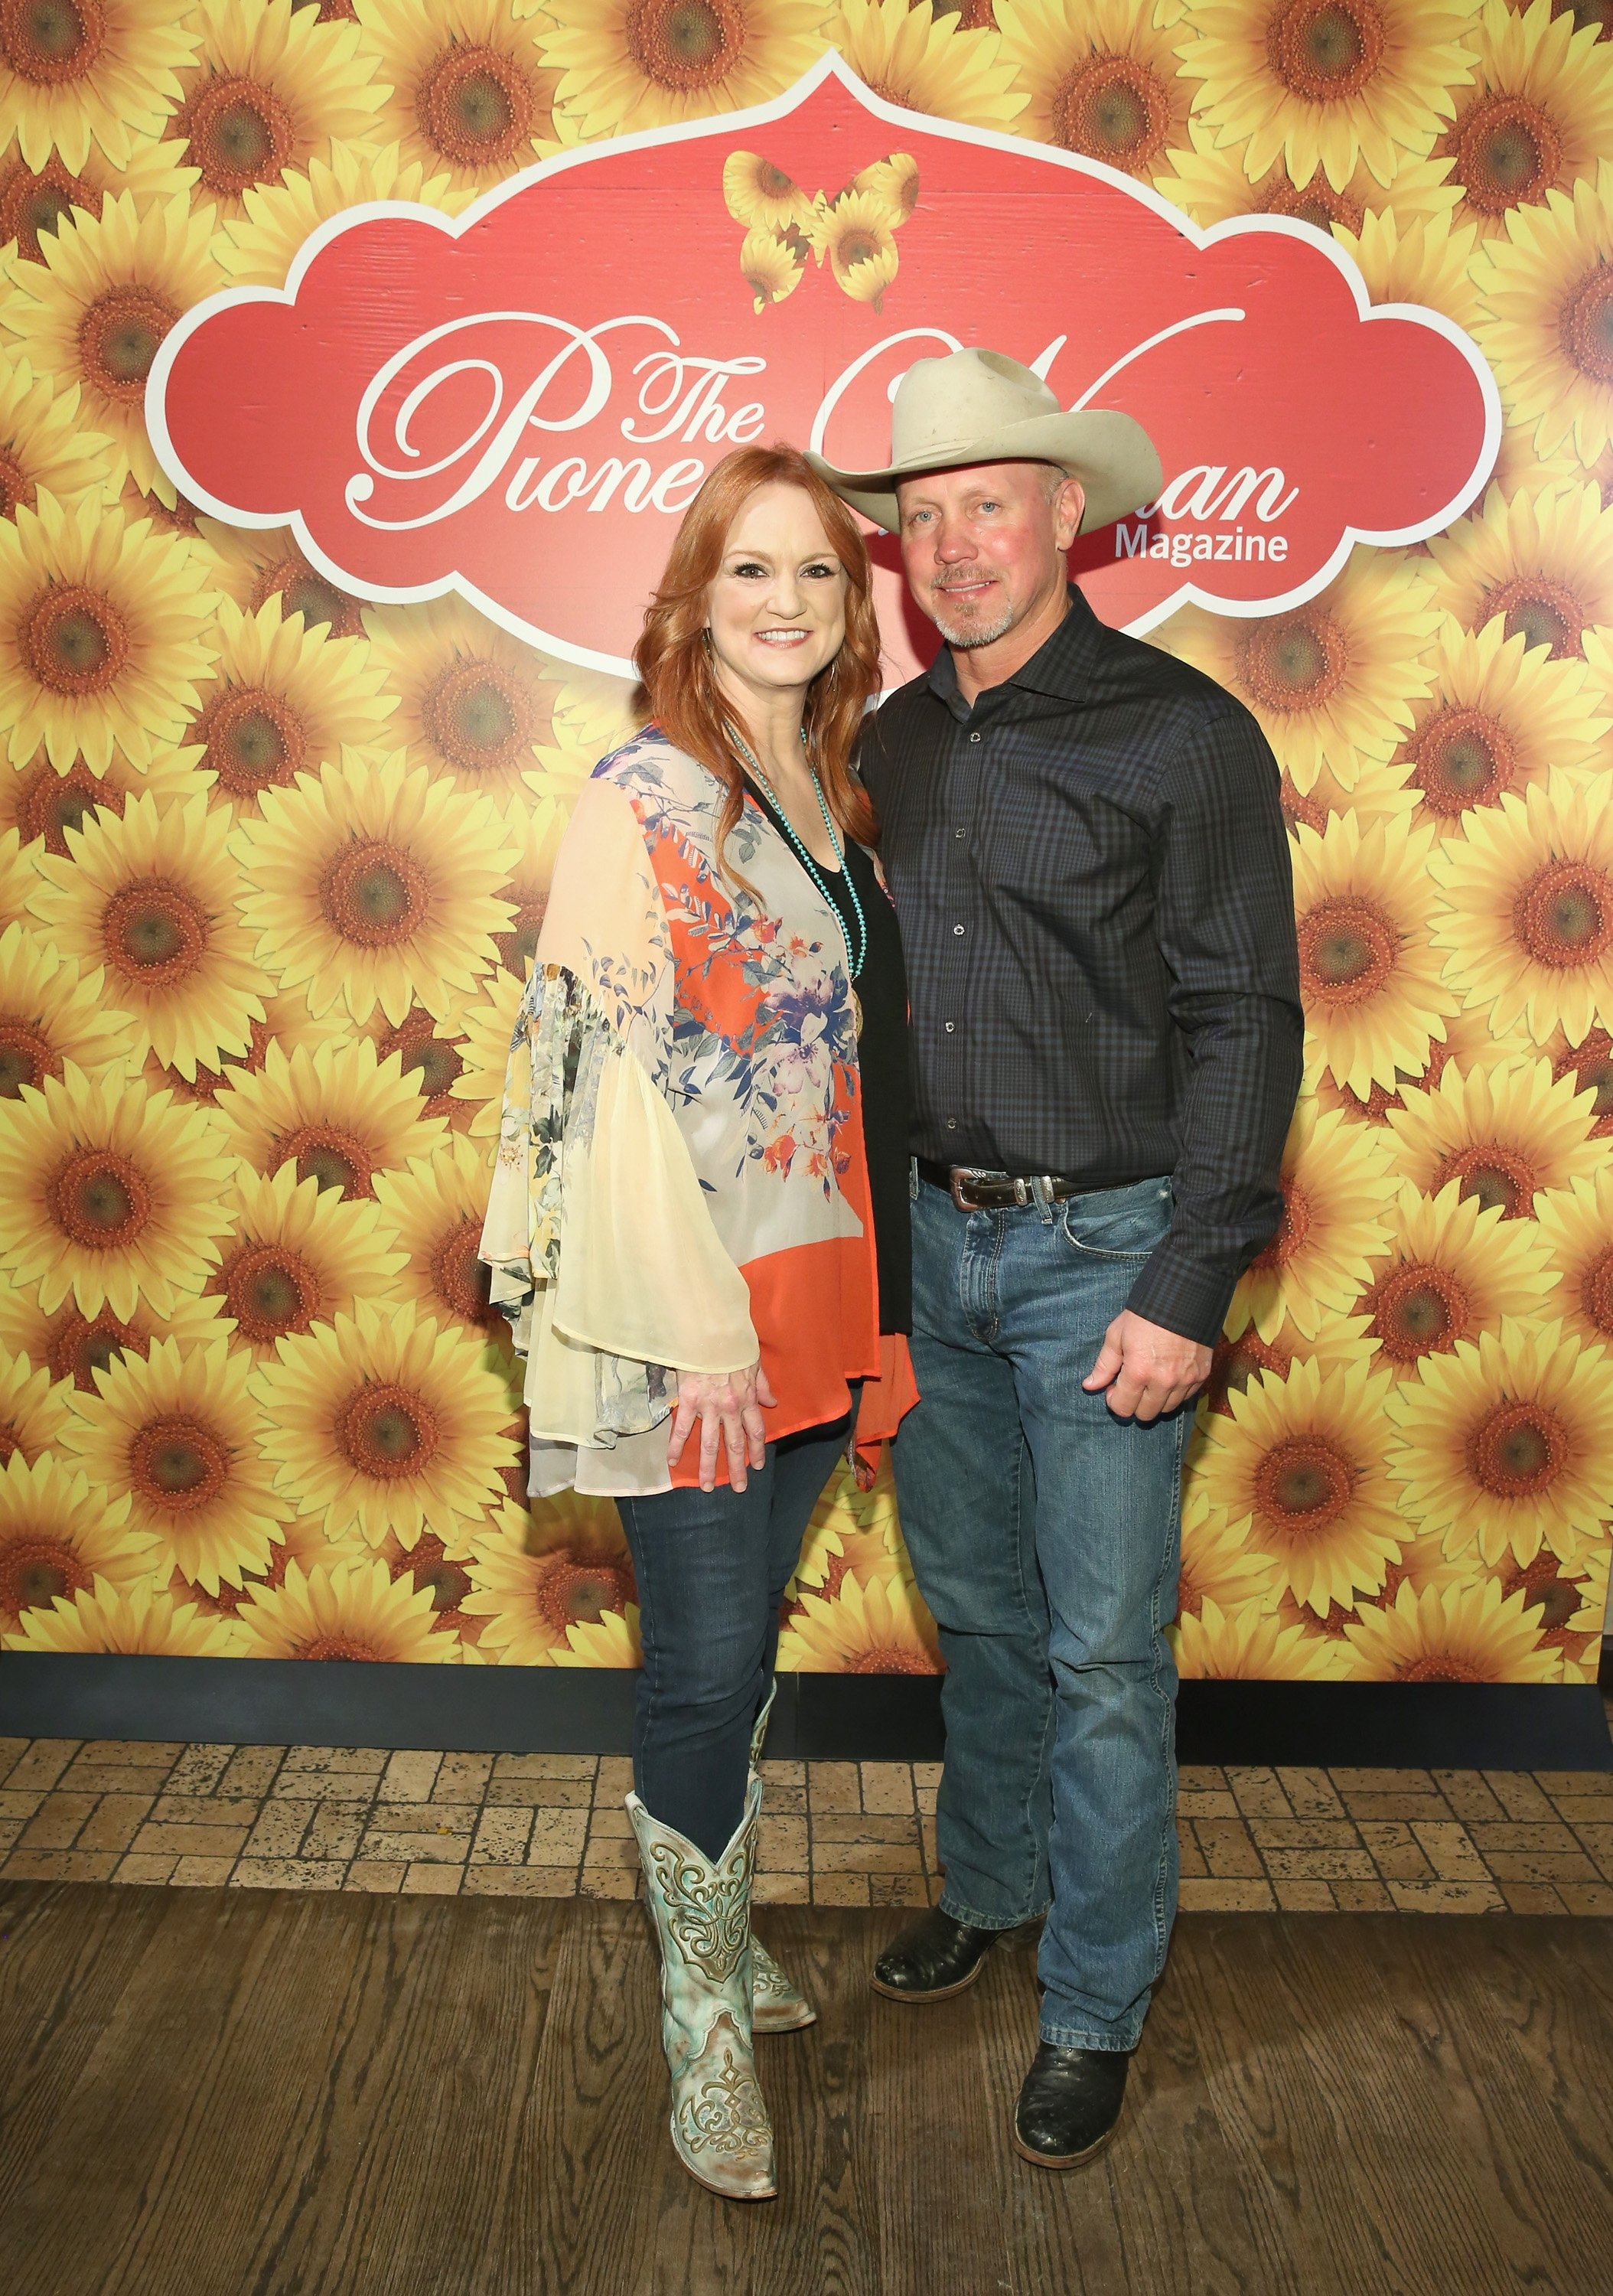 Ree Drummond and Ladd Drummond pose for a photo during The Pioneer Woman Magazine Celebration at The Mason Jar on June 6, 2017 in New York City | Photo: Getty Images